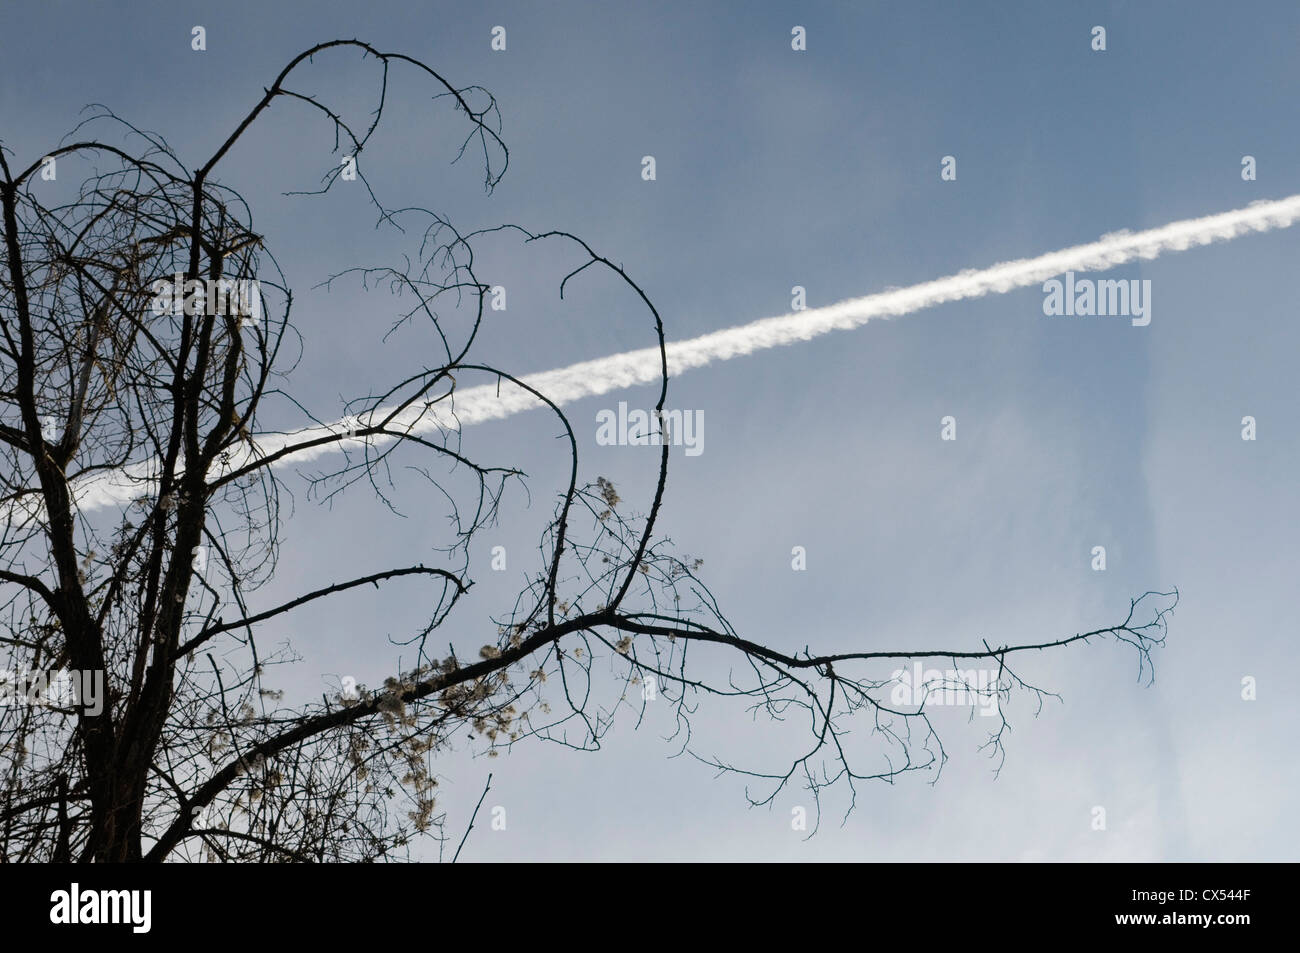 Arbre et trace d'avion sky Photo Stock